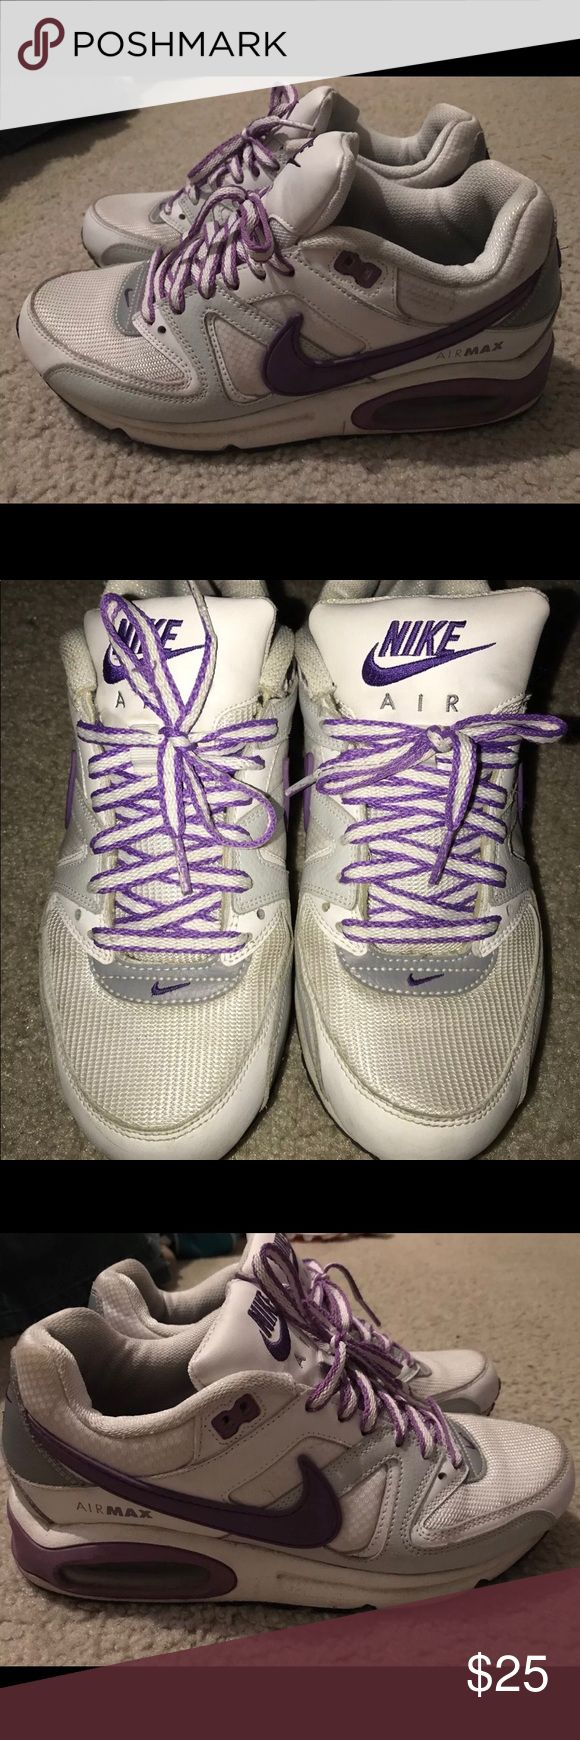 Nike Air Max Women's 9.5 Shoes are in great condition. Used but no odor.  They are purple and white. Nike Shoes Athletic Shoes